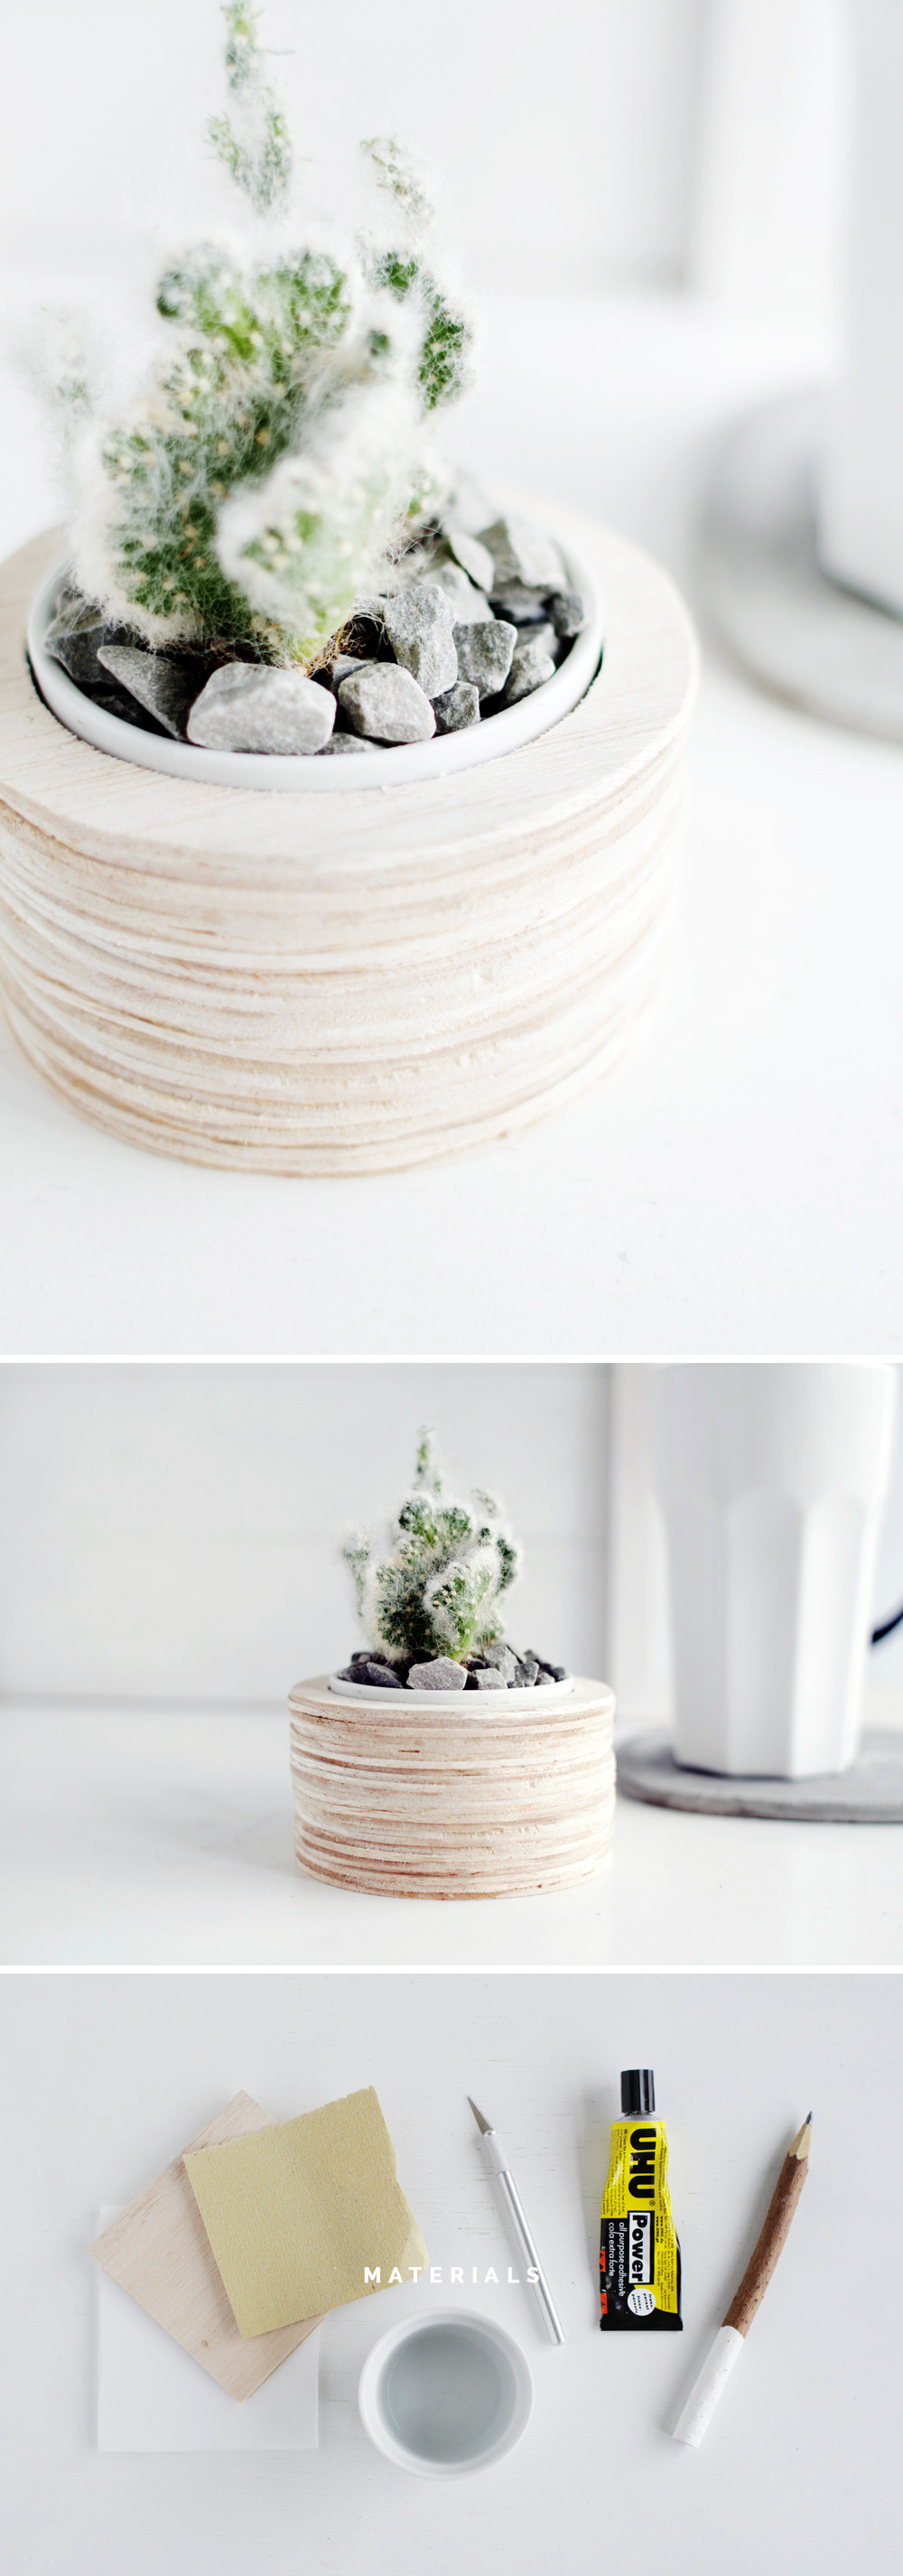 Fall For DIY Balsa Wood Planter Materials